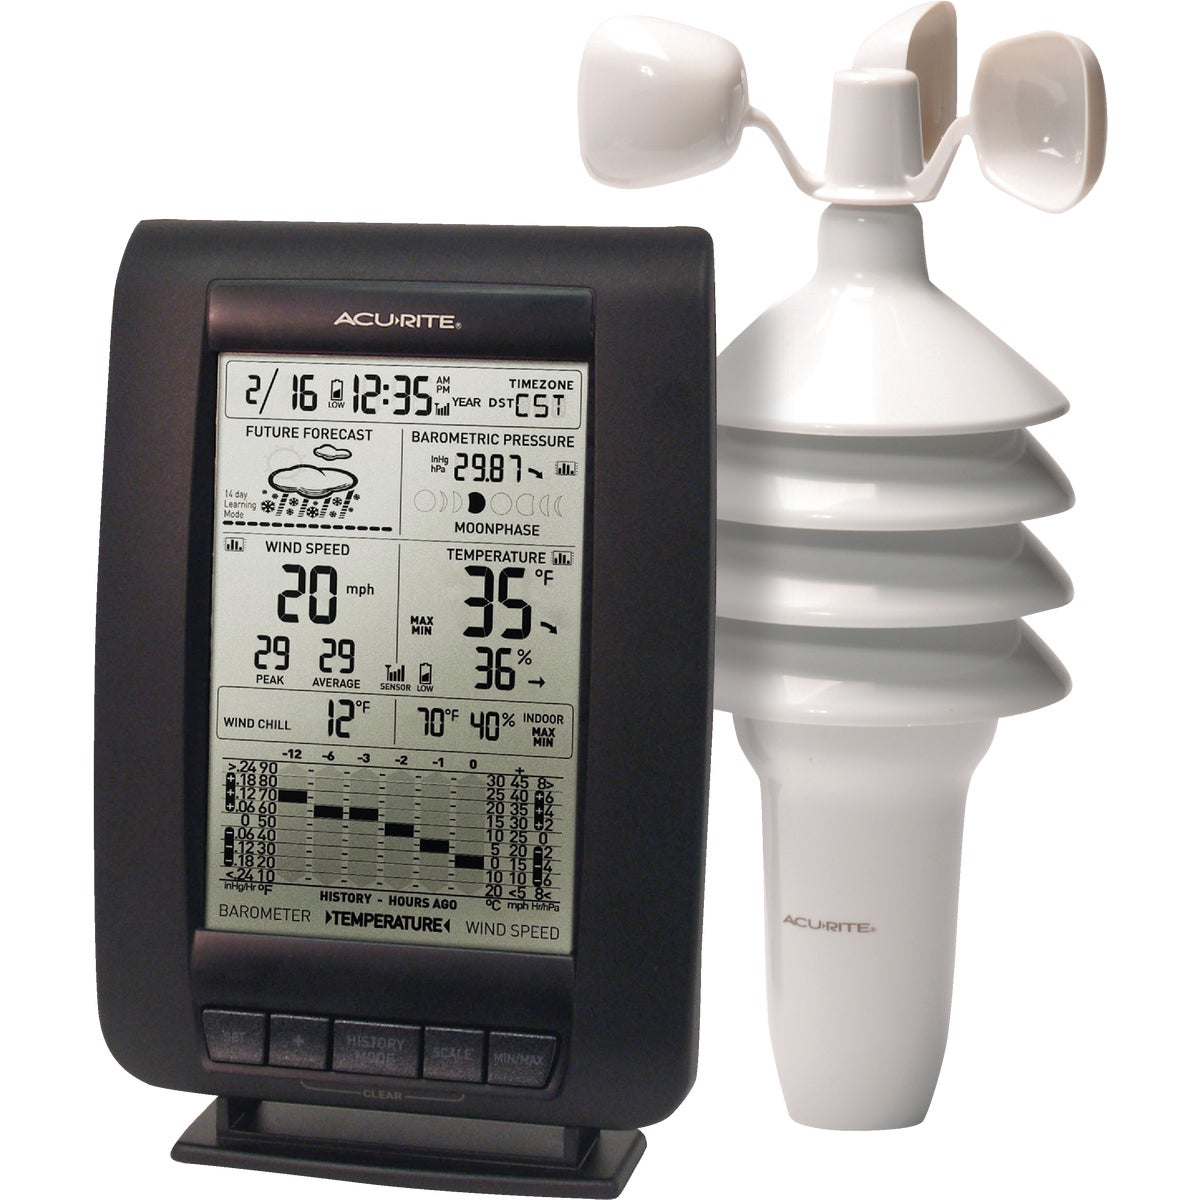 Item 650178, Deluxe wireless weather center, 3-in-1 wireless sensor. Easy set up. Indoor/outdoor temperature with trend arrows. Wind speed/gust/chill.